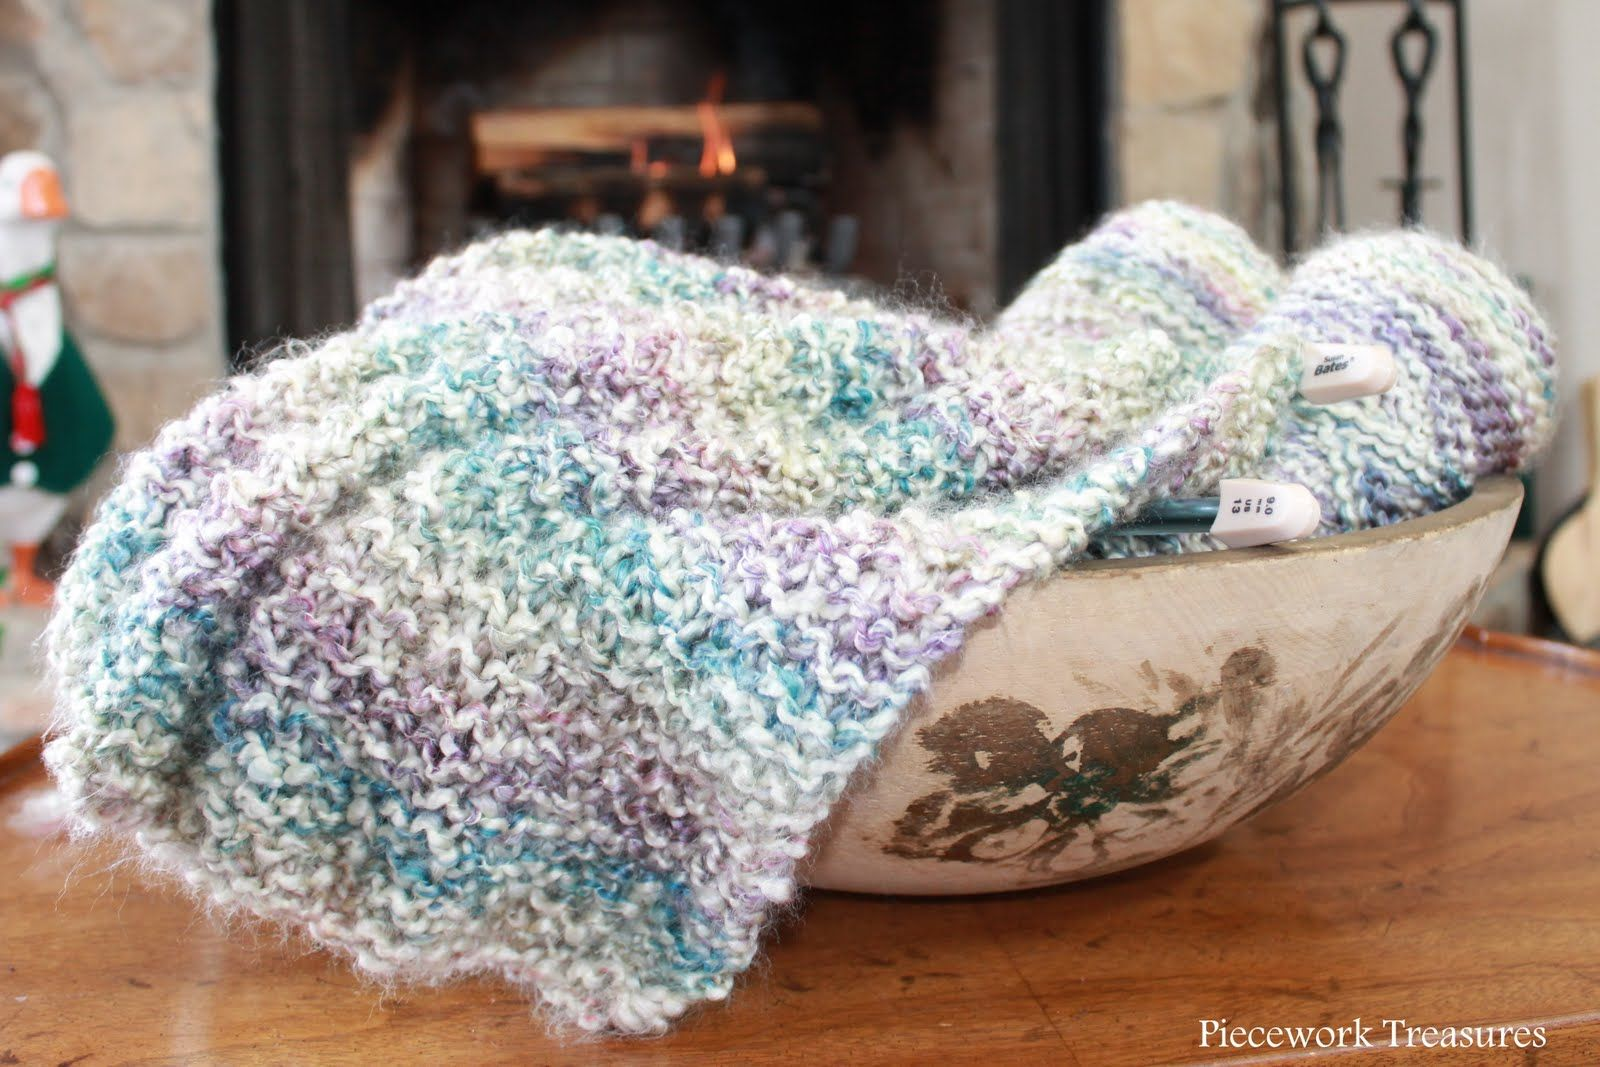 Simple Knitted Prayer Shawl Pattern | Piecework Treasures: a new ...